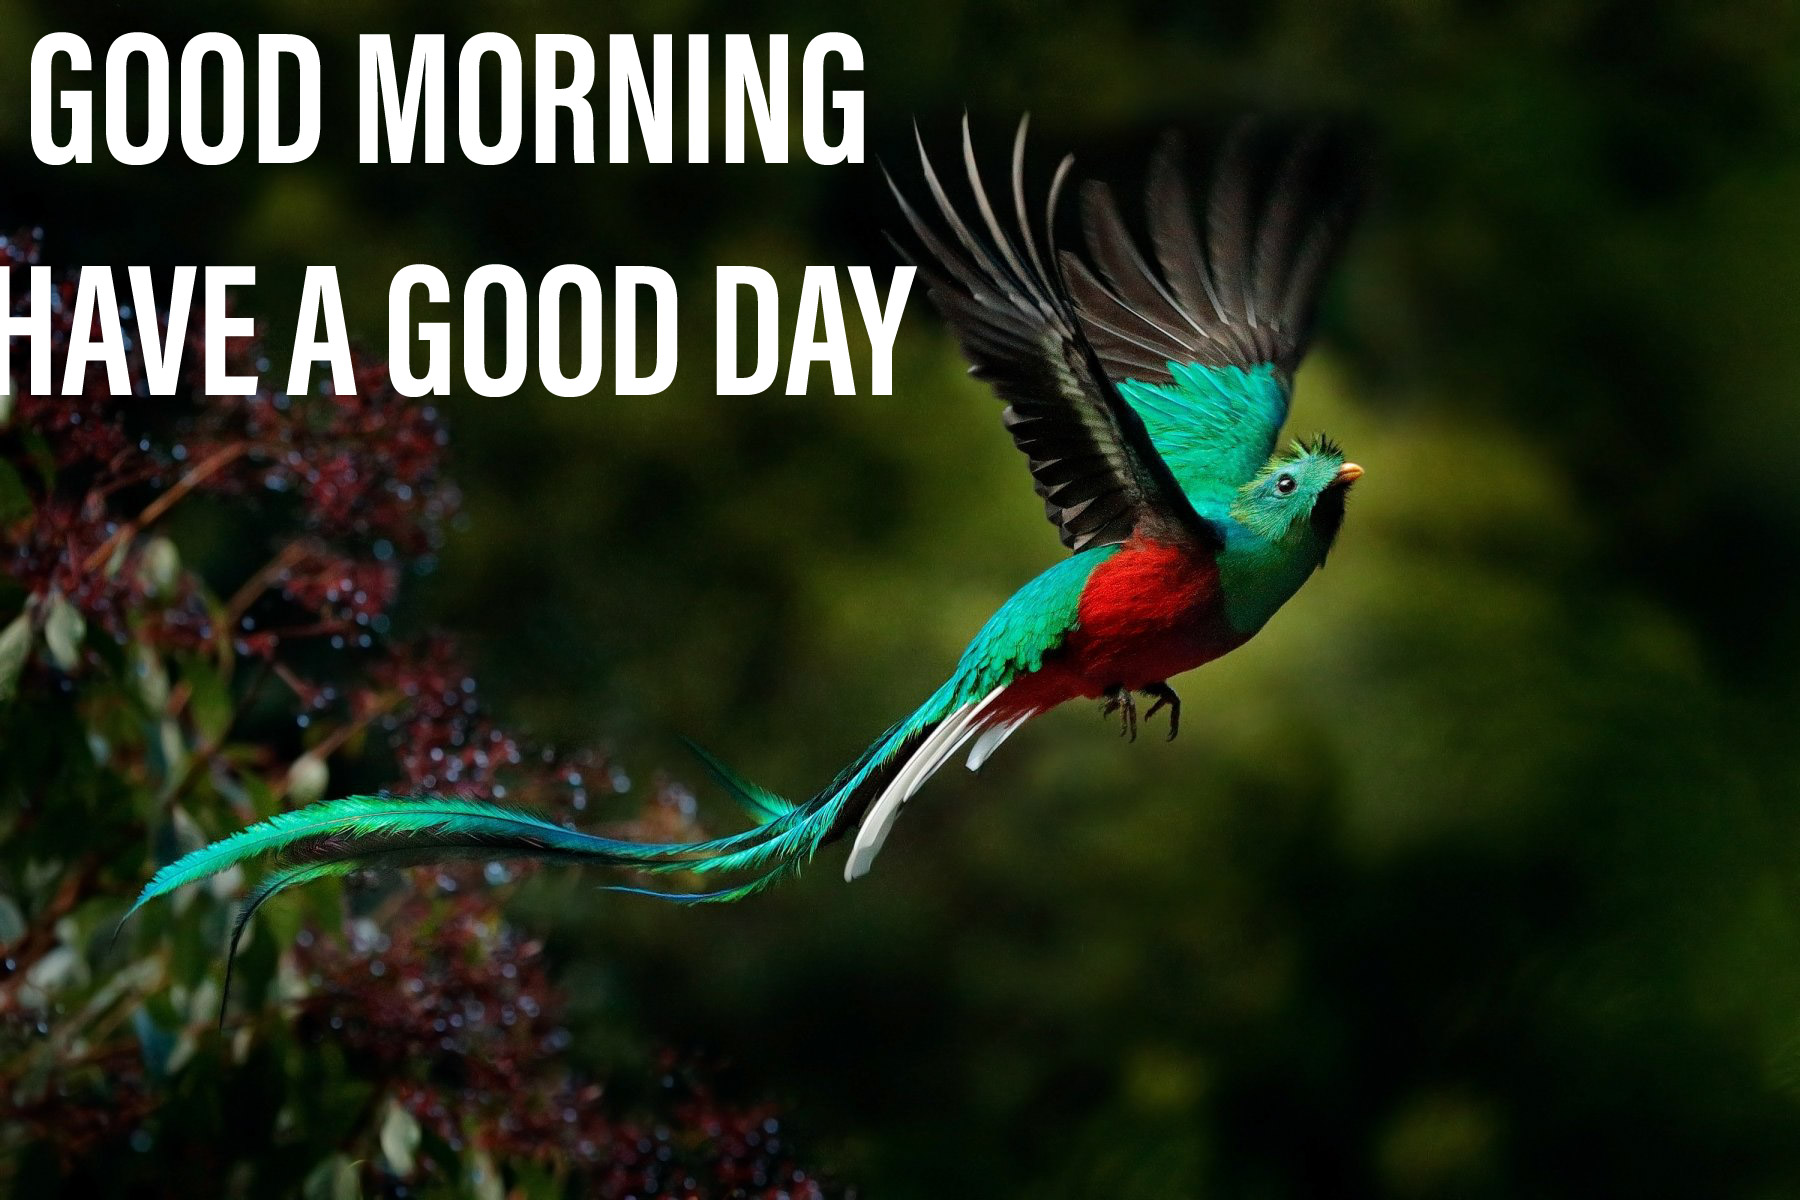 Colourfull image with bird good morning